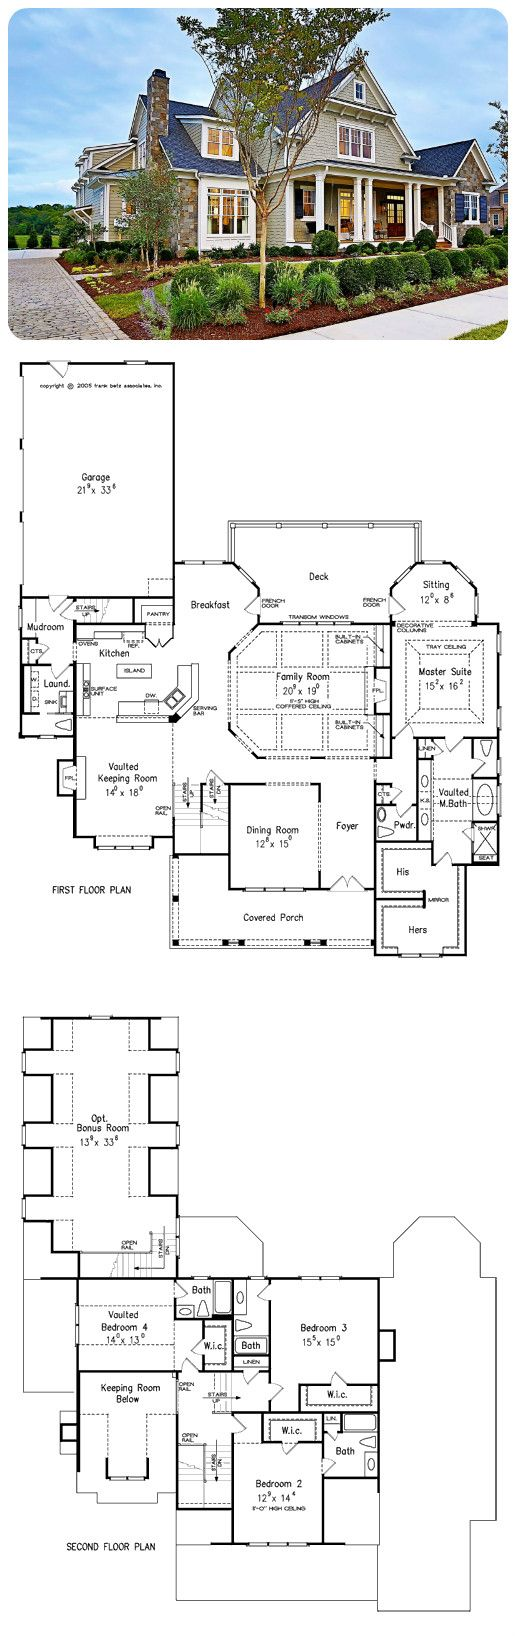 Best 25 home floor plans ideas on pinterest house floor Rest house plan